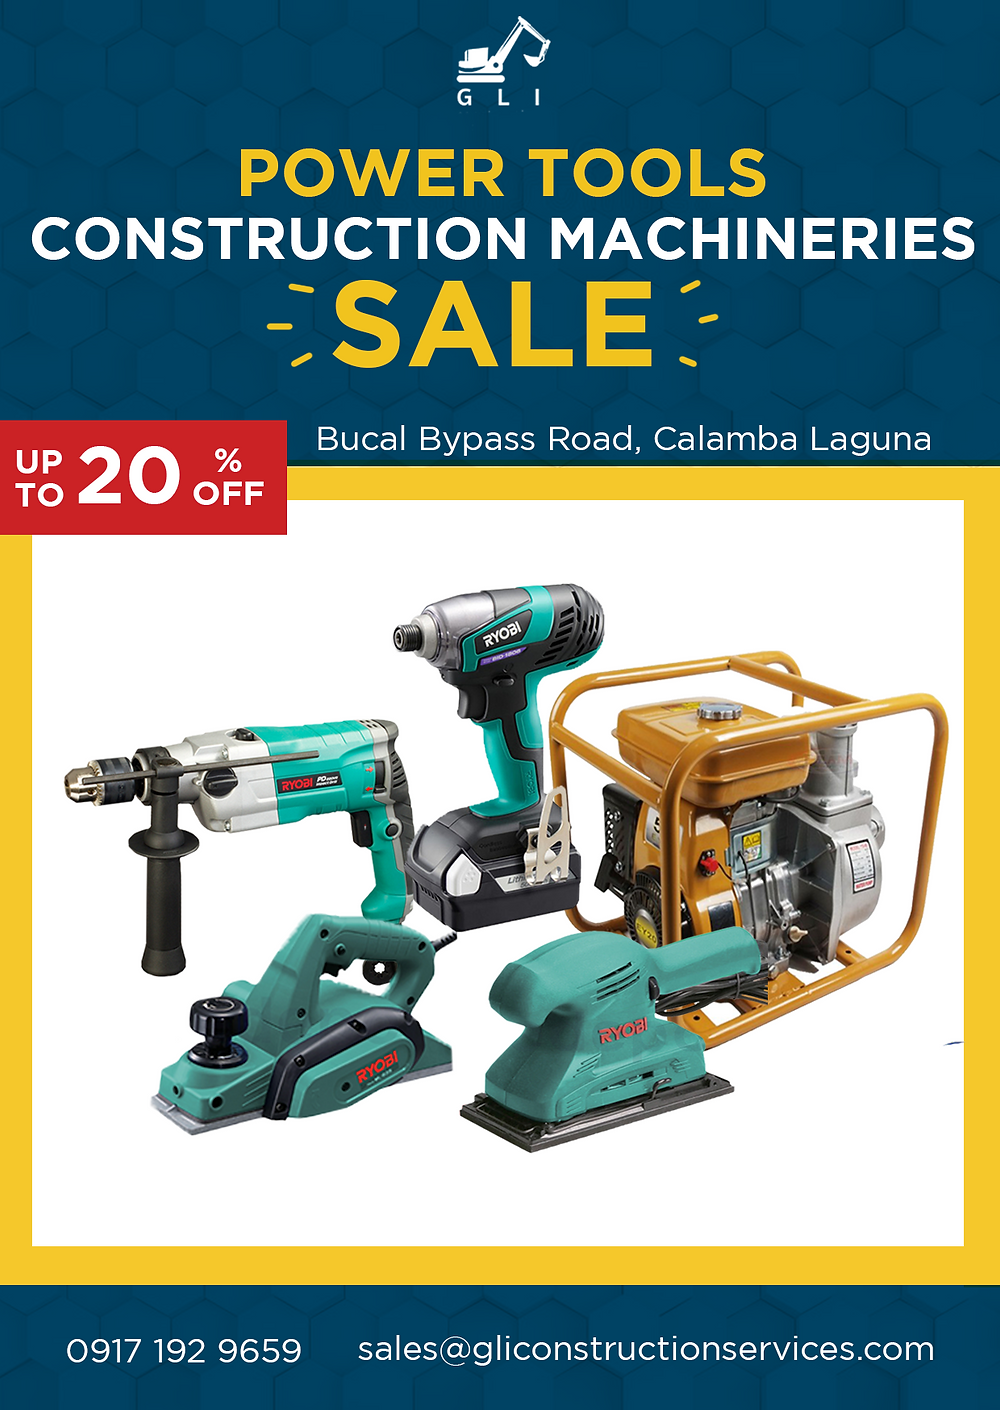 Power Tools construction machineries for sale, up to 20% off, bucal bypass road, calamba laguna, 0917 192 9659 sales@gliconstructionservices.com, multiple tools